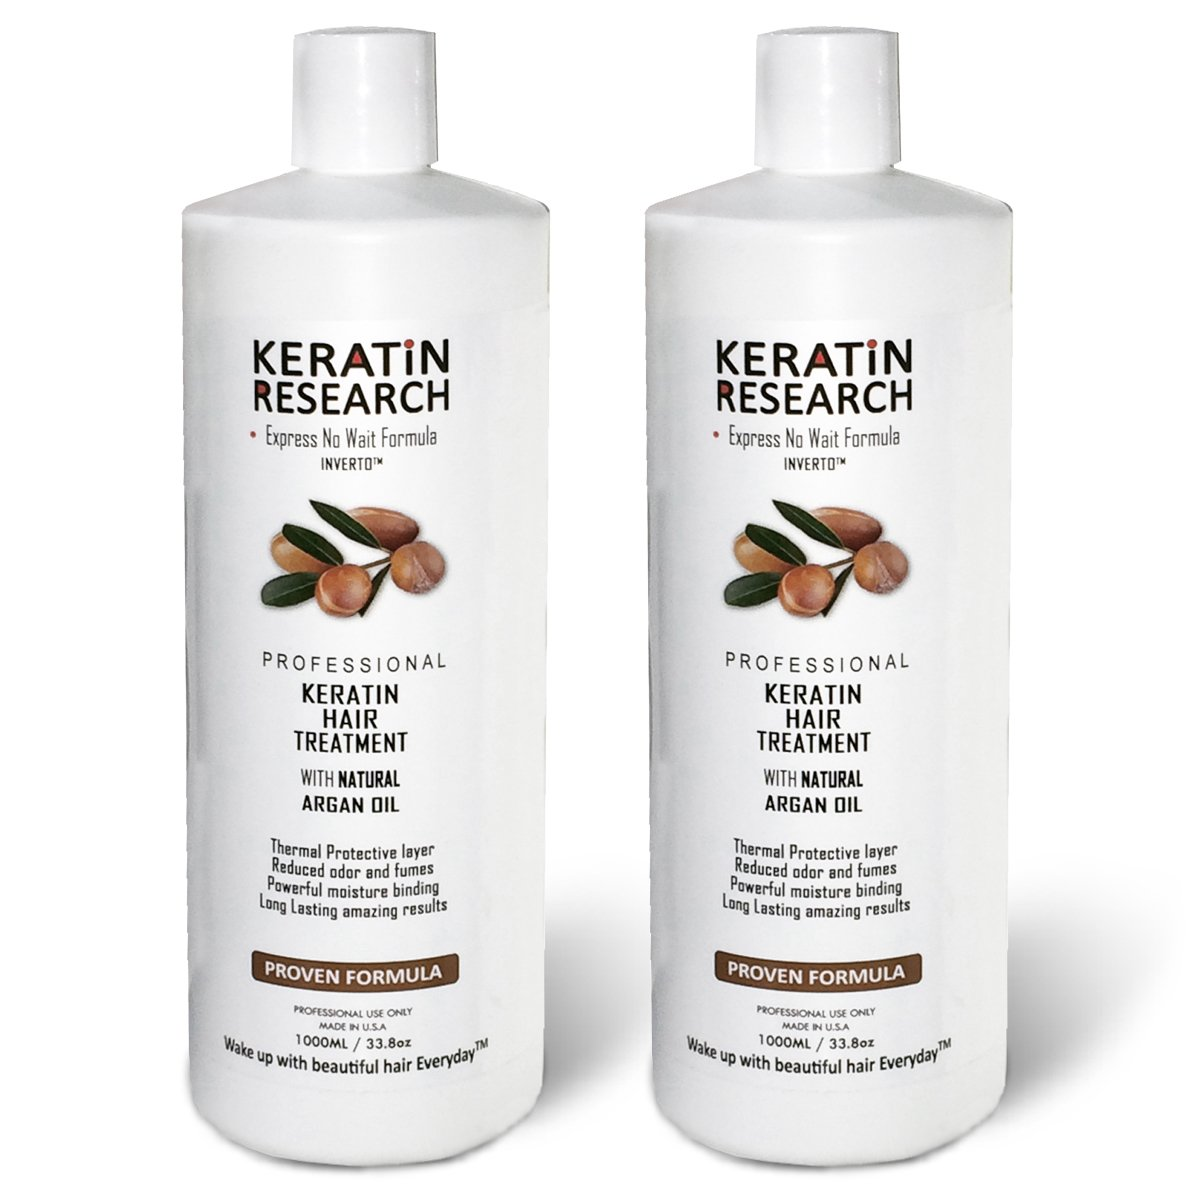 Brazilian Keratin Blowout Straightening Smoothing Hair Treatment Conditioner 2000ml 2 Liters Professional Complex Bottle by Keratin Research